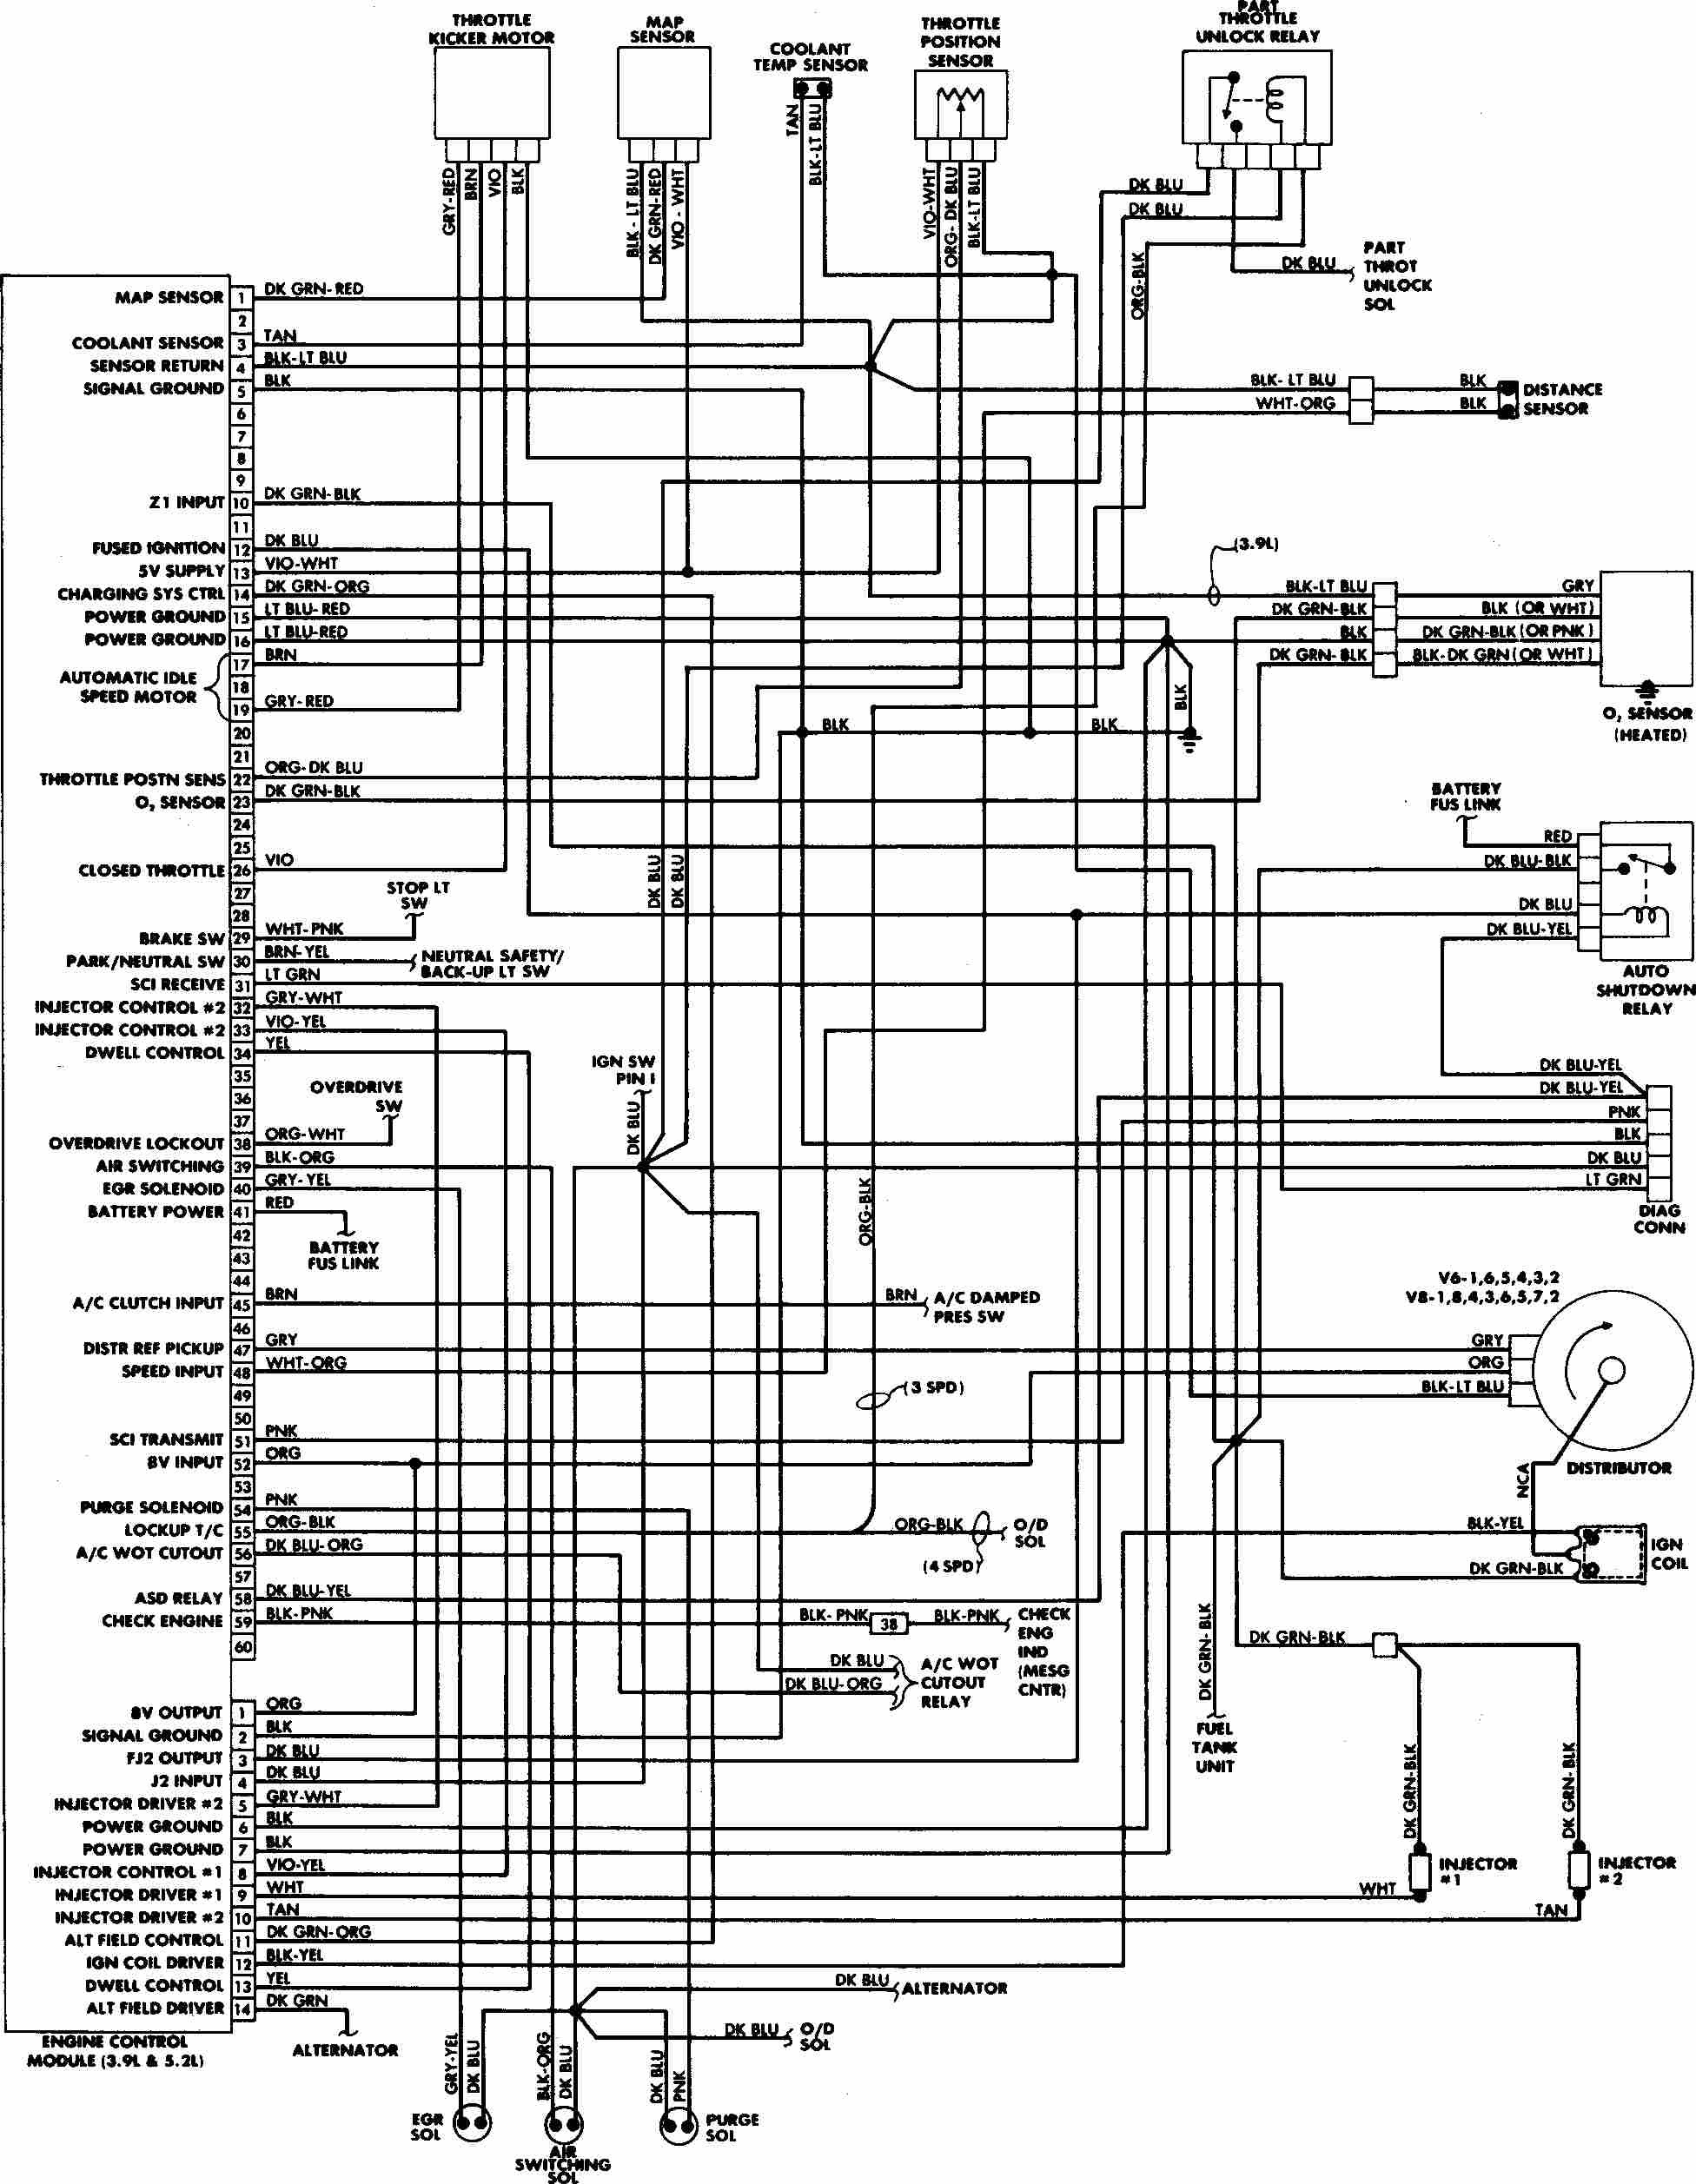 Lighting Wiring Diagrams Dodge Dakota -Sears Tractor Wiring Diagram |  Begeboy Wiring Diagram Source